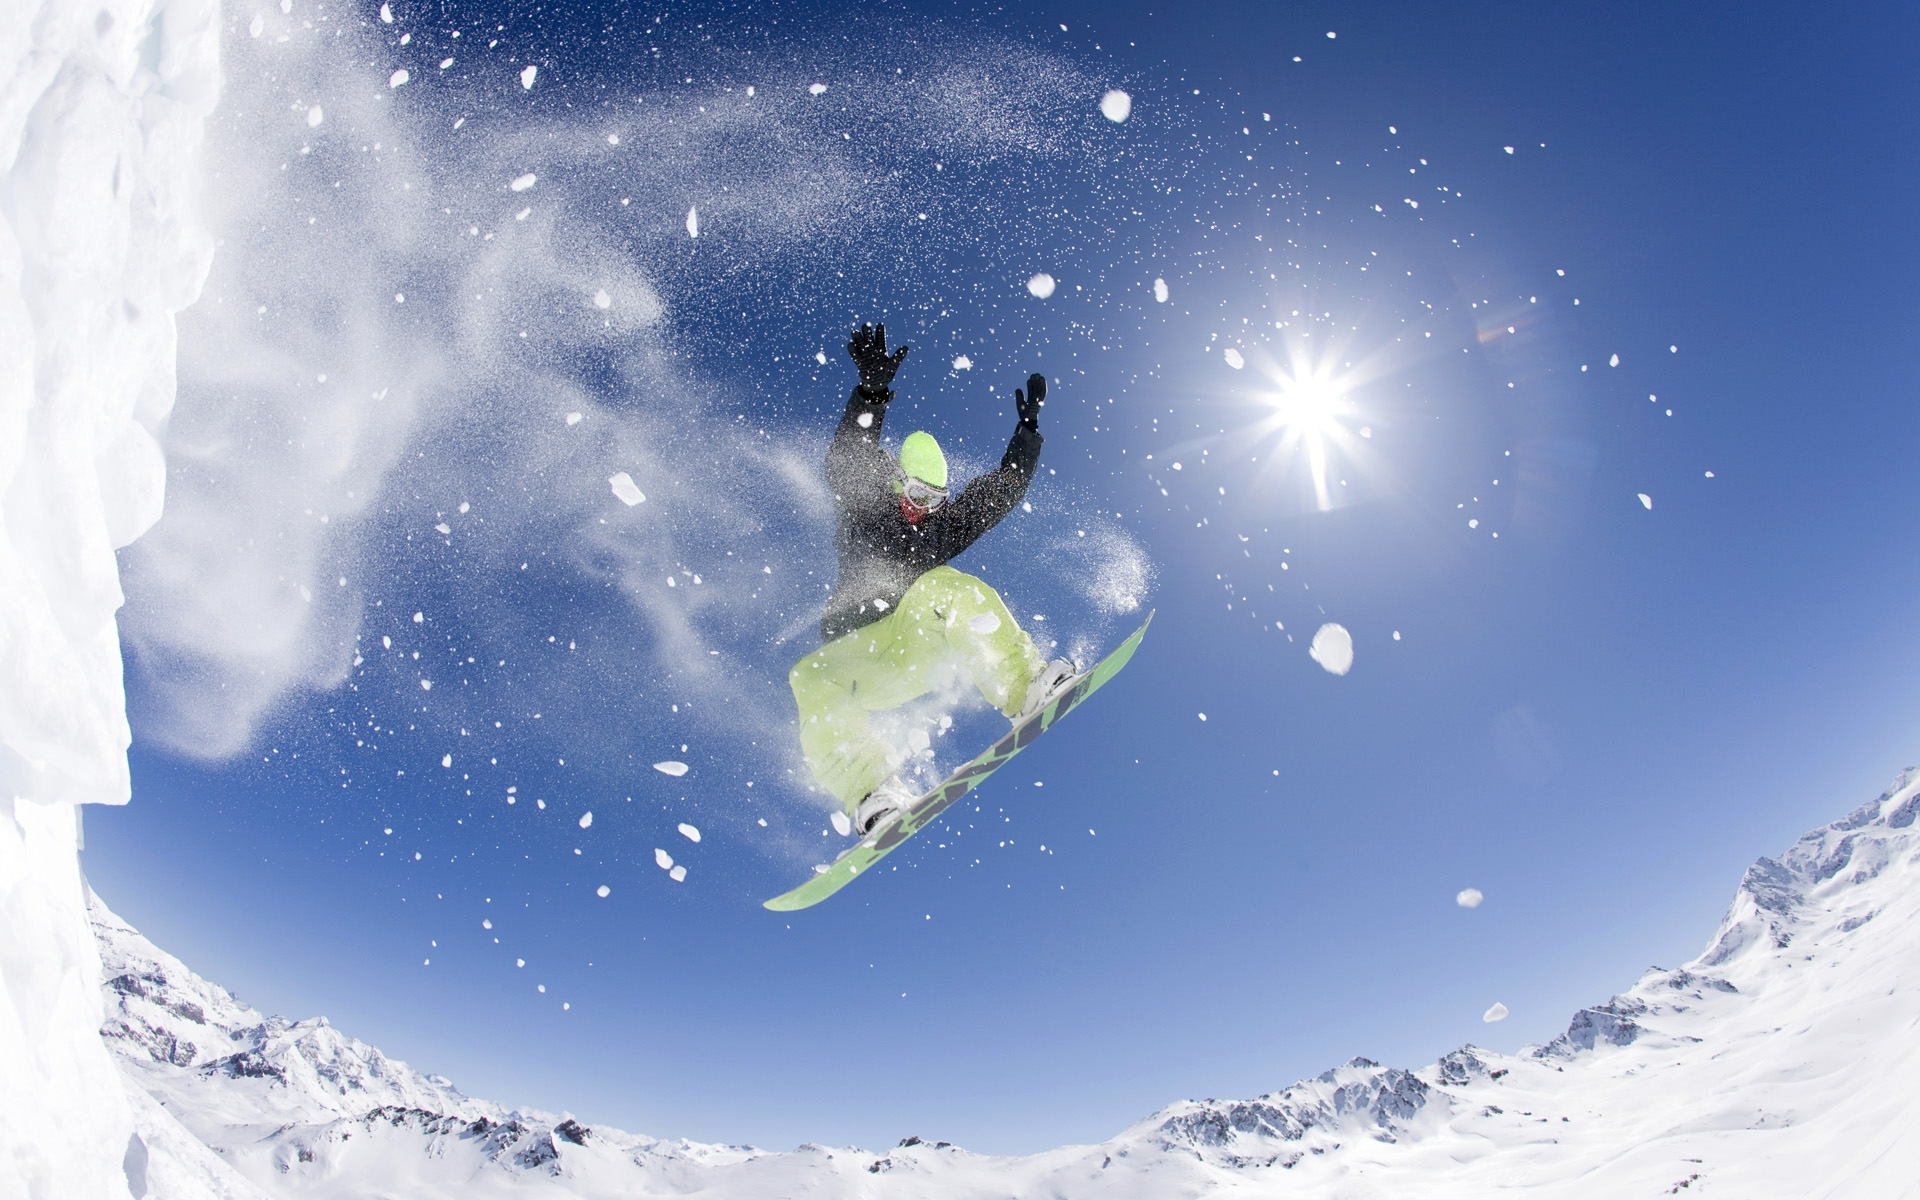 40900 download wallpaper Sports, Snowboarding screensavers and pictures for free